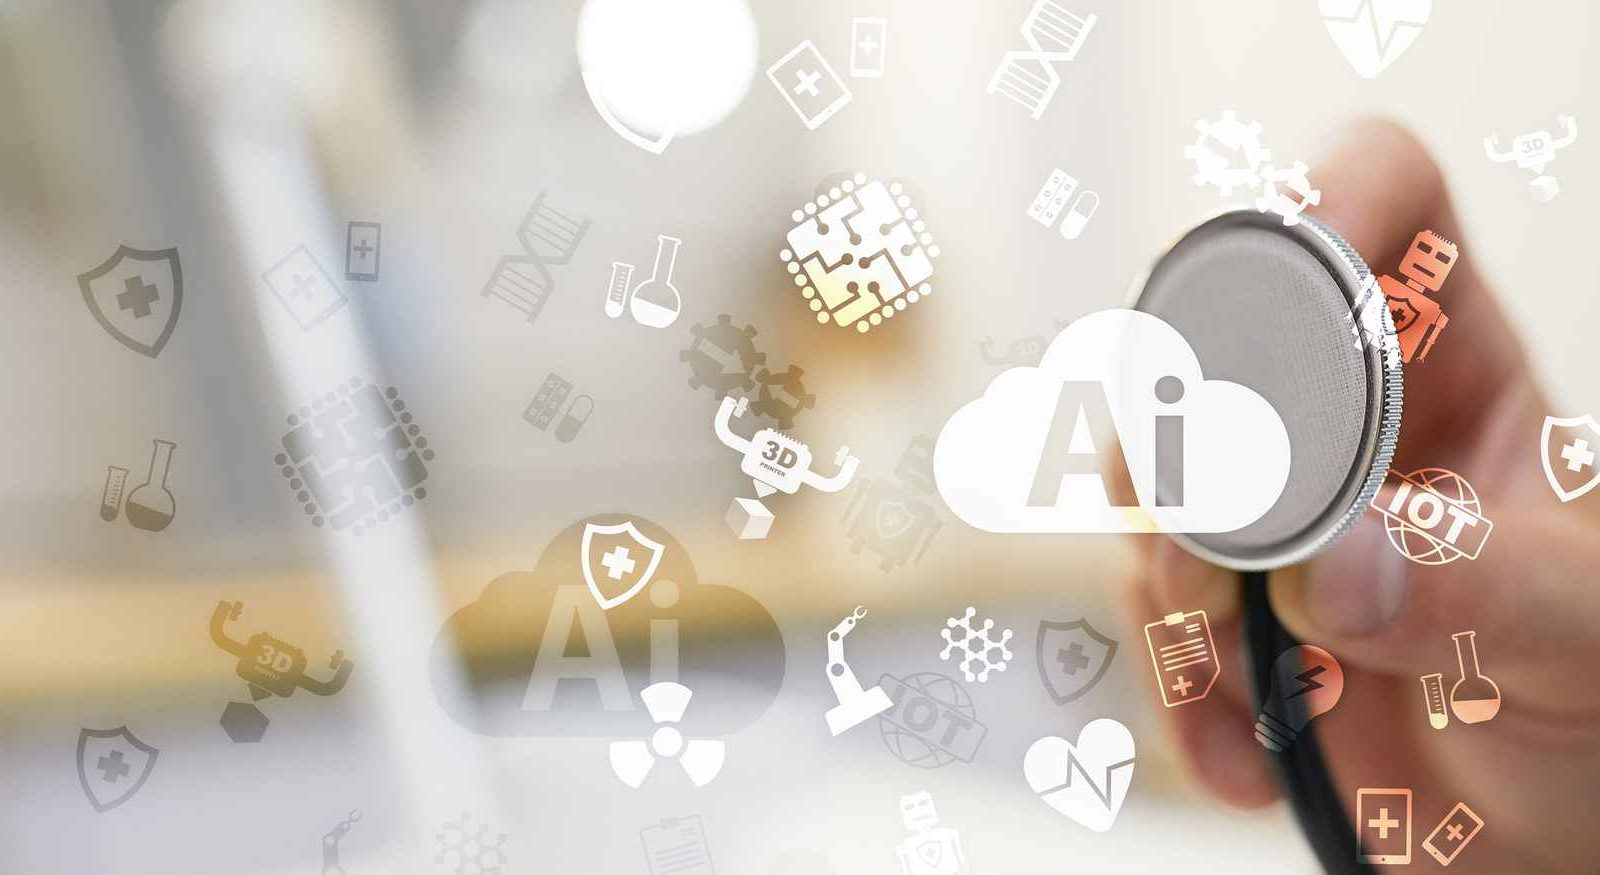 AIs Role in Healthcare IT